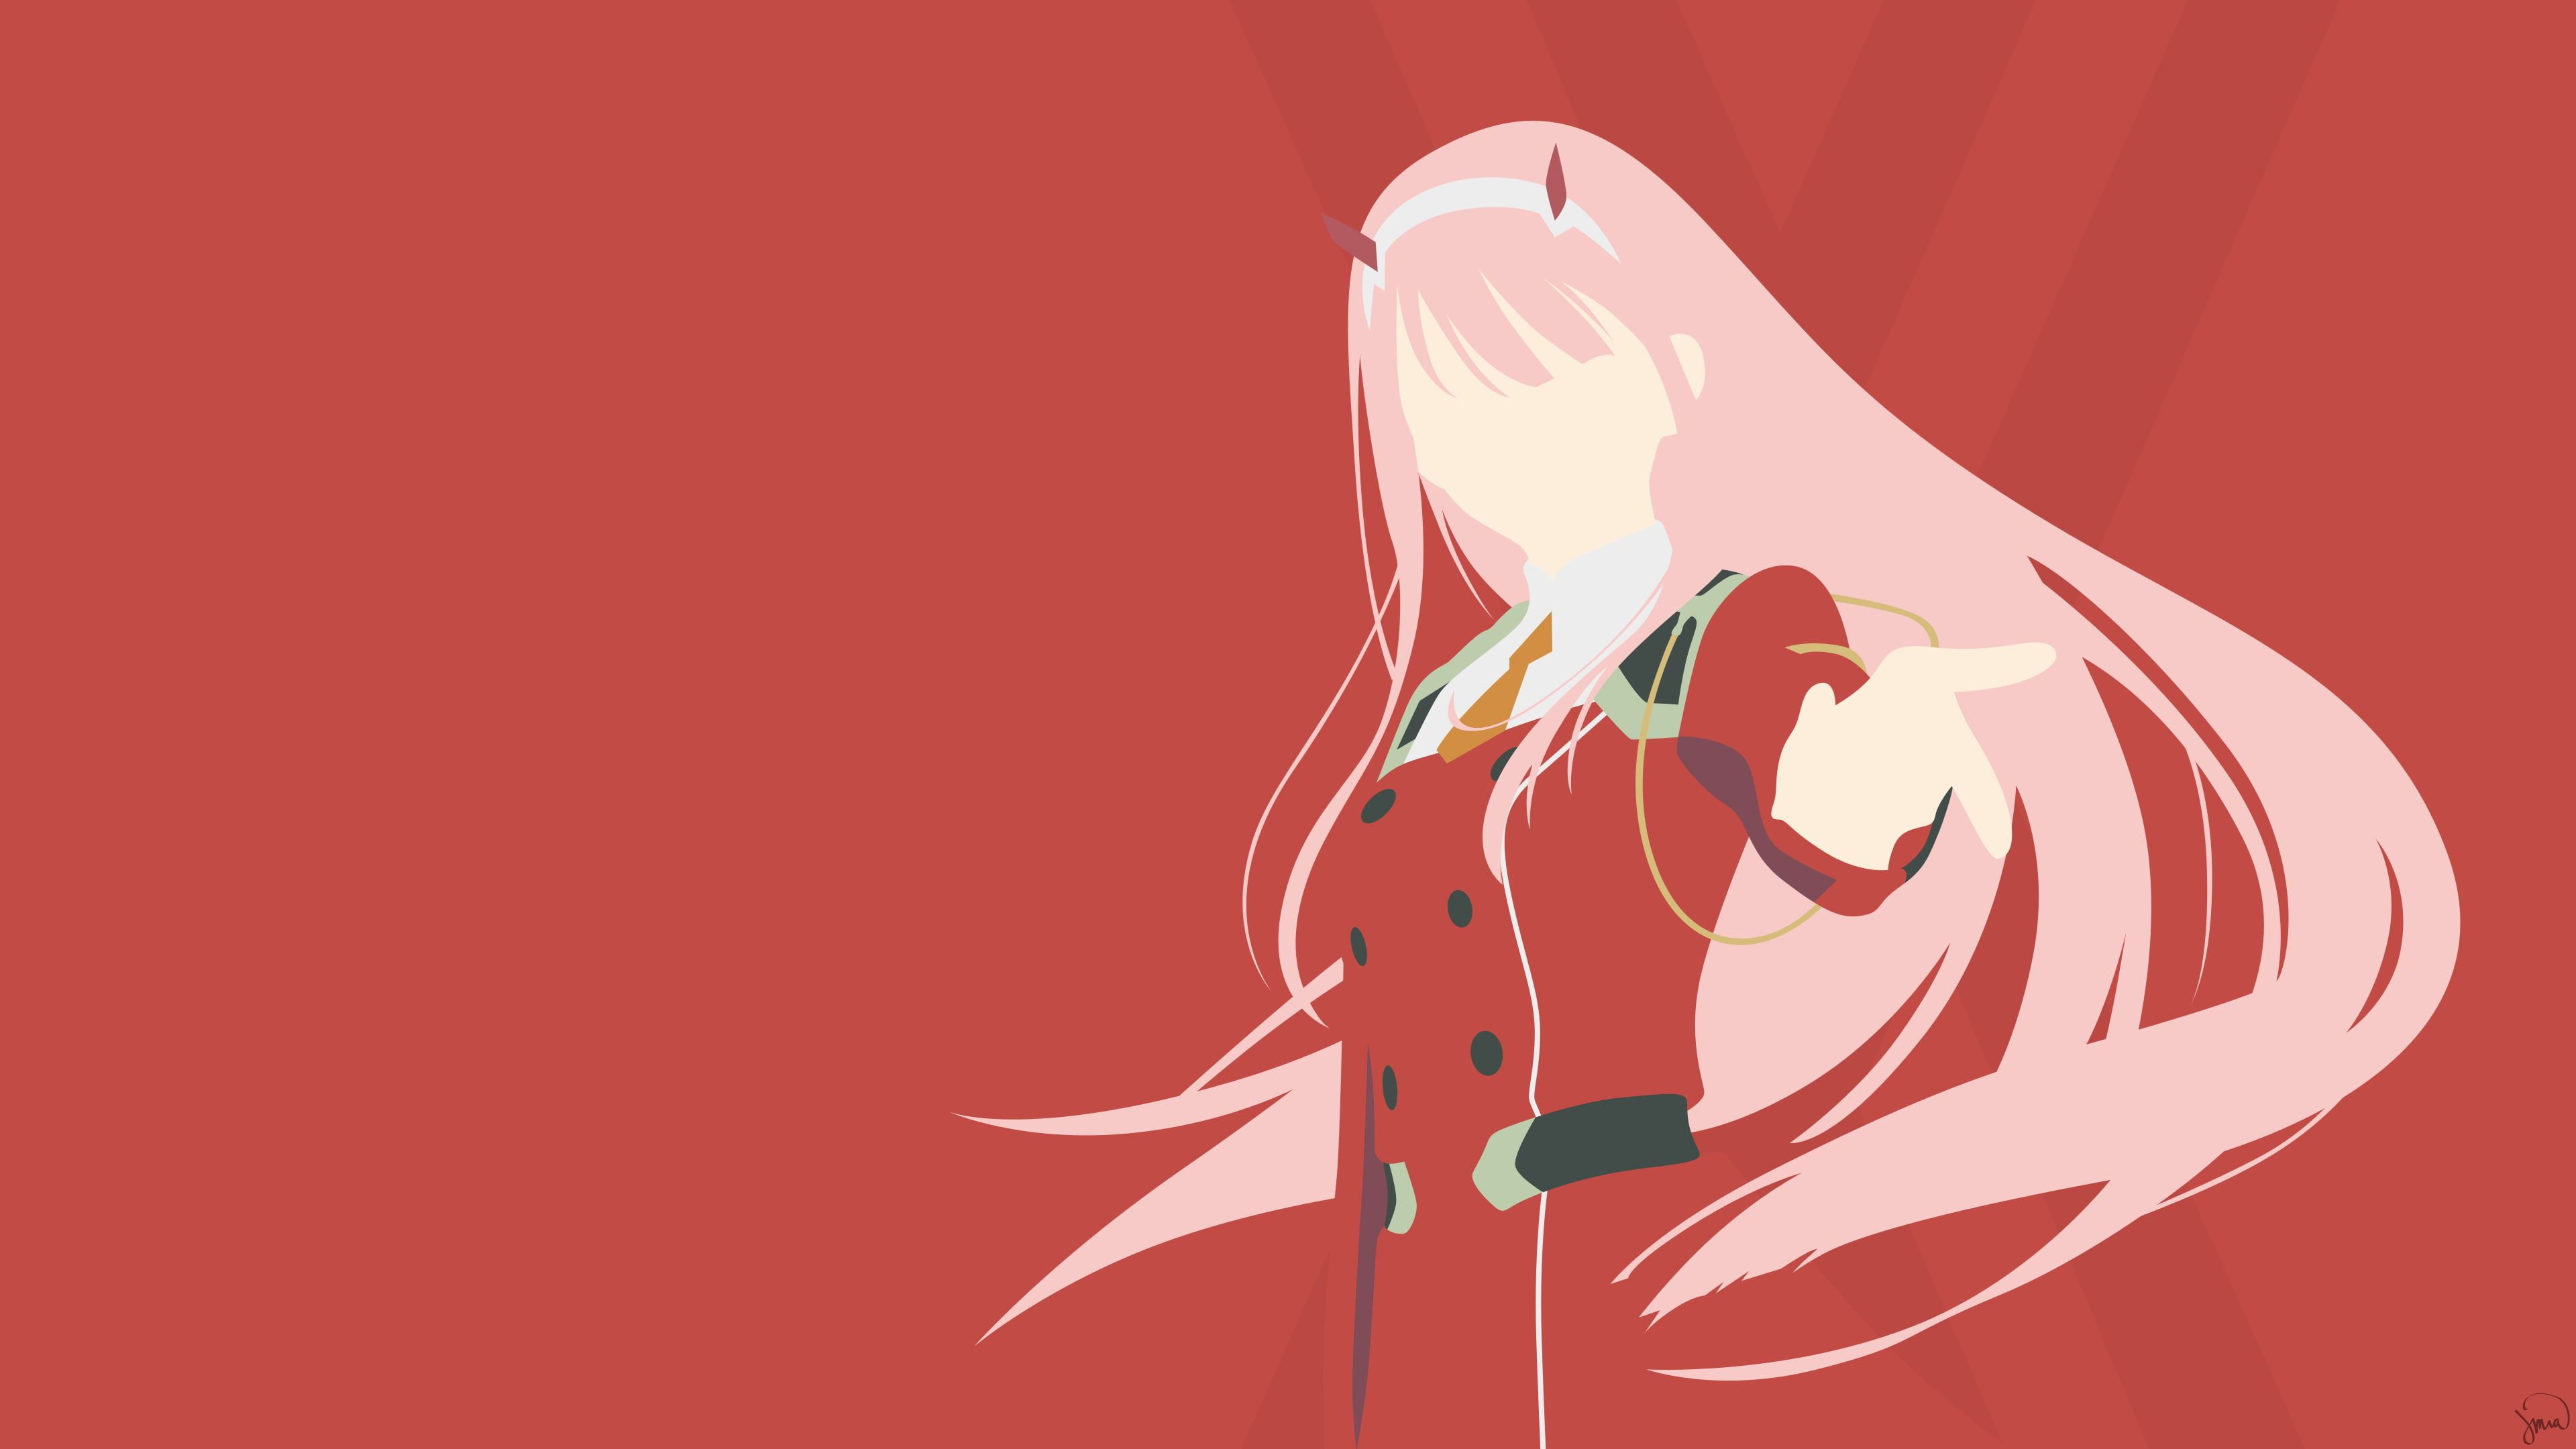 Greenmapple17 Darling In The Franxx Zero Two Darling In The Franxx Minimalism Simple Background Anim Darling In The Franxx Zero Two Anime Artwork Wallpaper